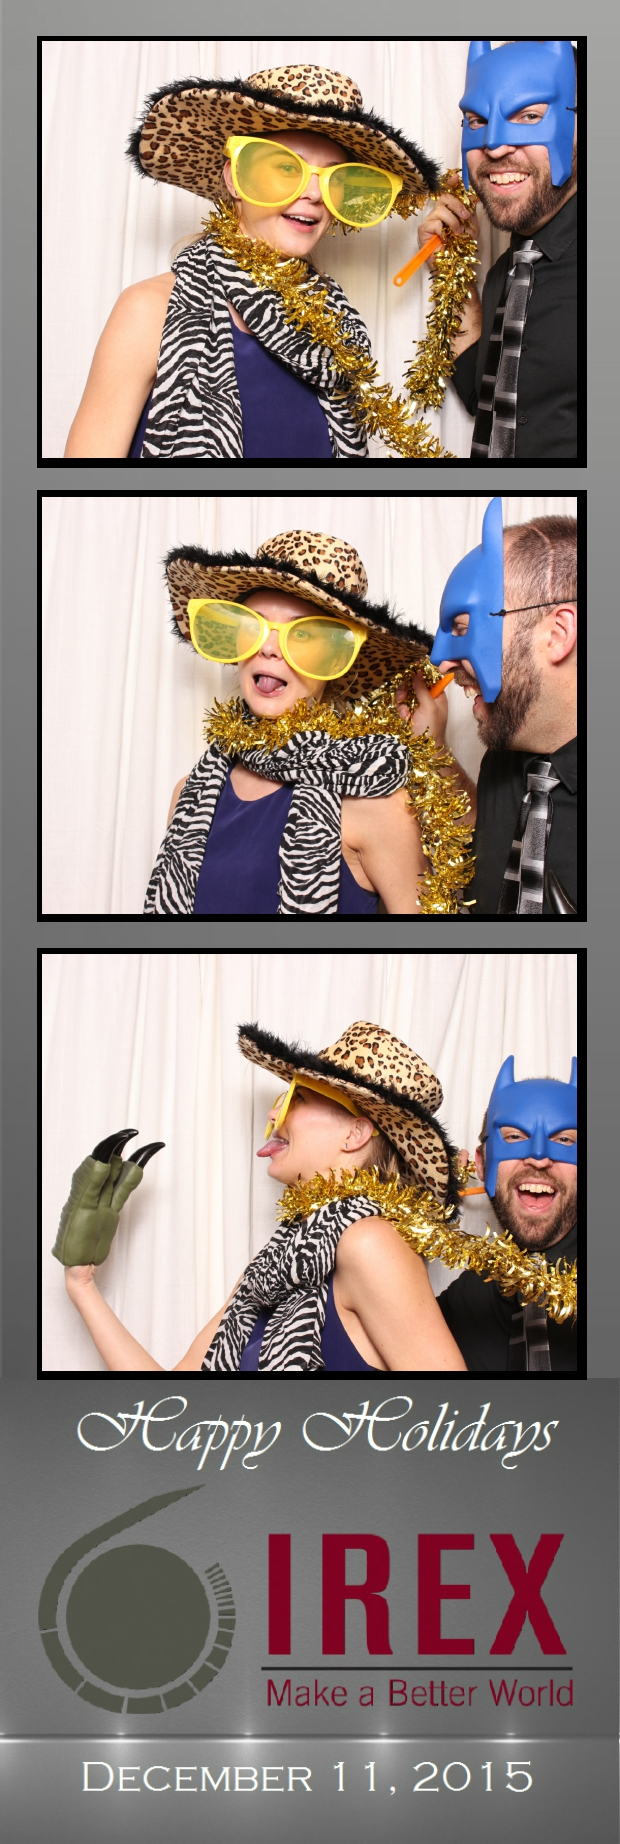 Guest House Events Photo Booth Strips IREX (54).jpg